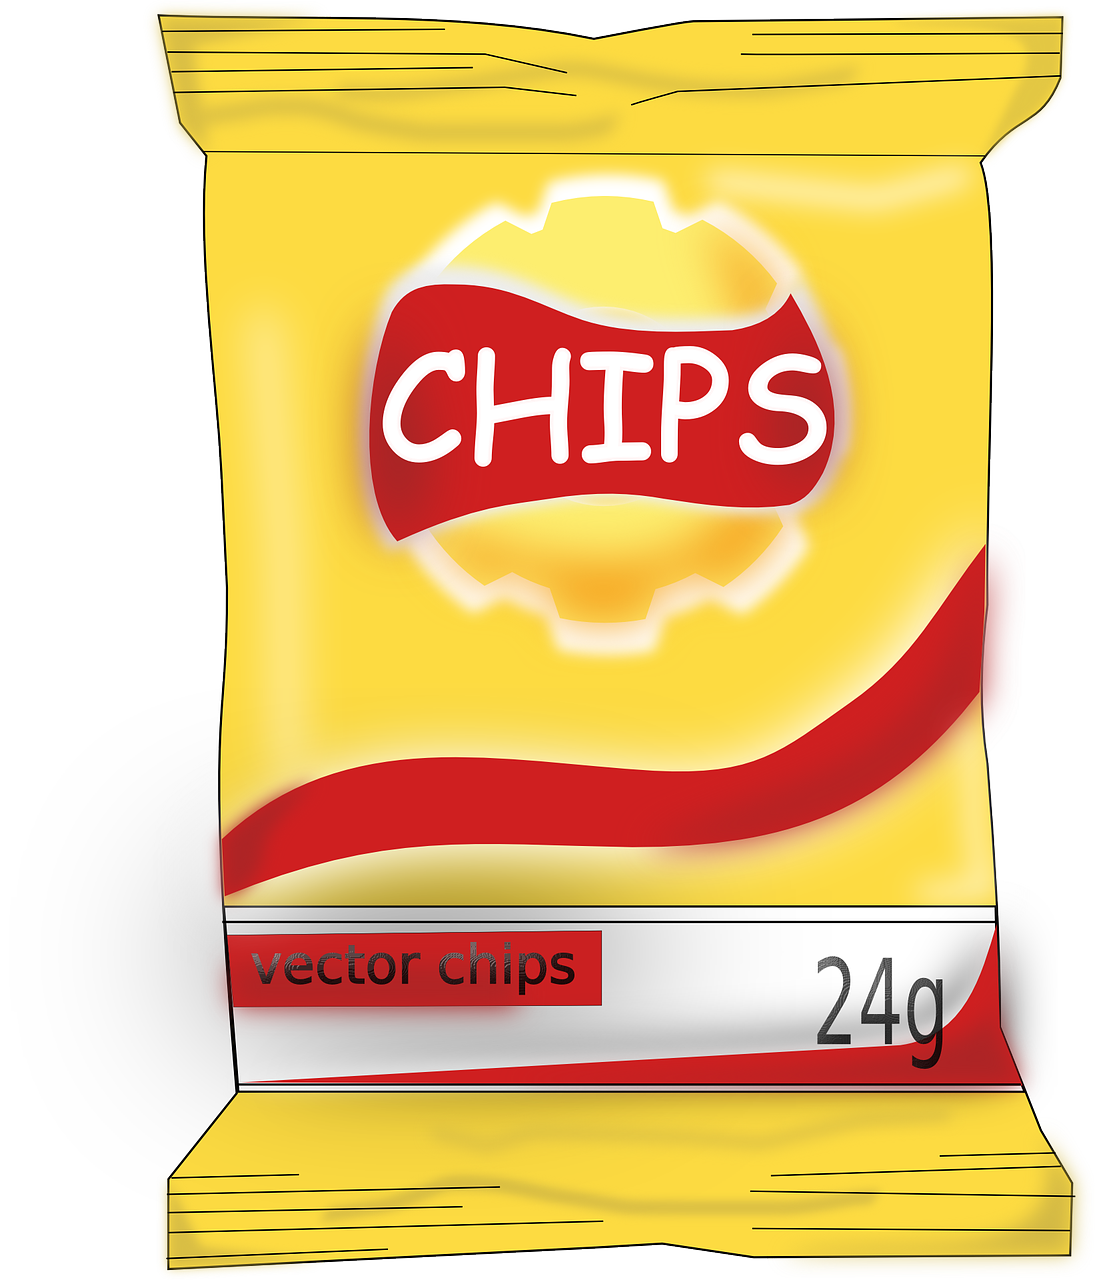 Food chips yummy tasty. Donuts clipart unhealthy snack